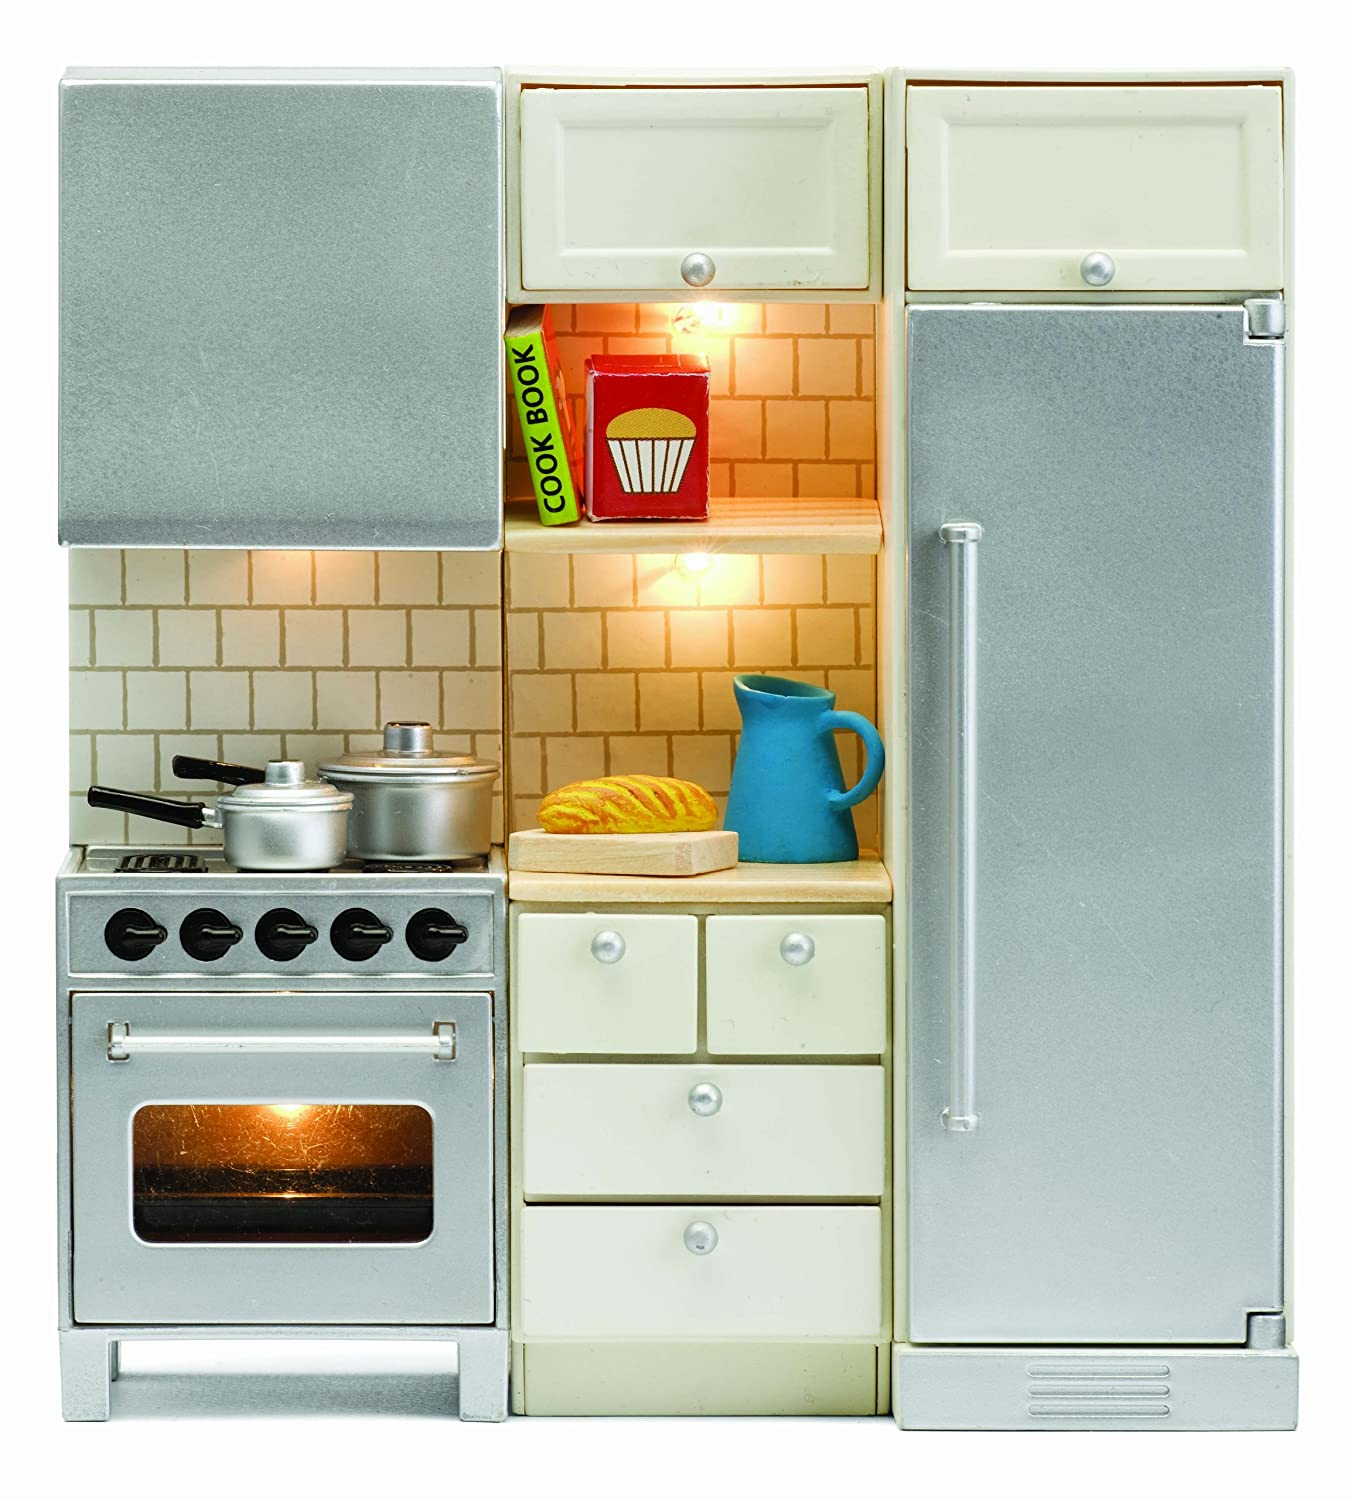 Amazon.com: Lundby Smaland Dollhouse Stove + Fridge Set: Toys & Games